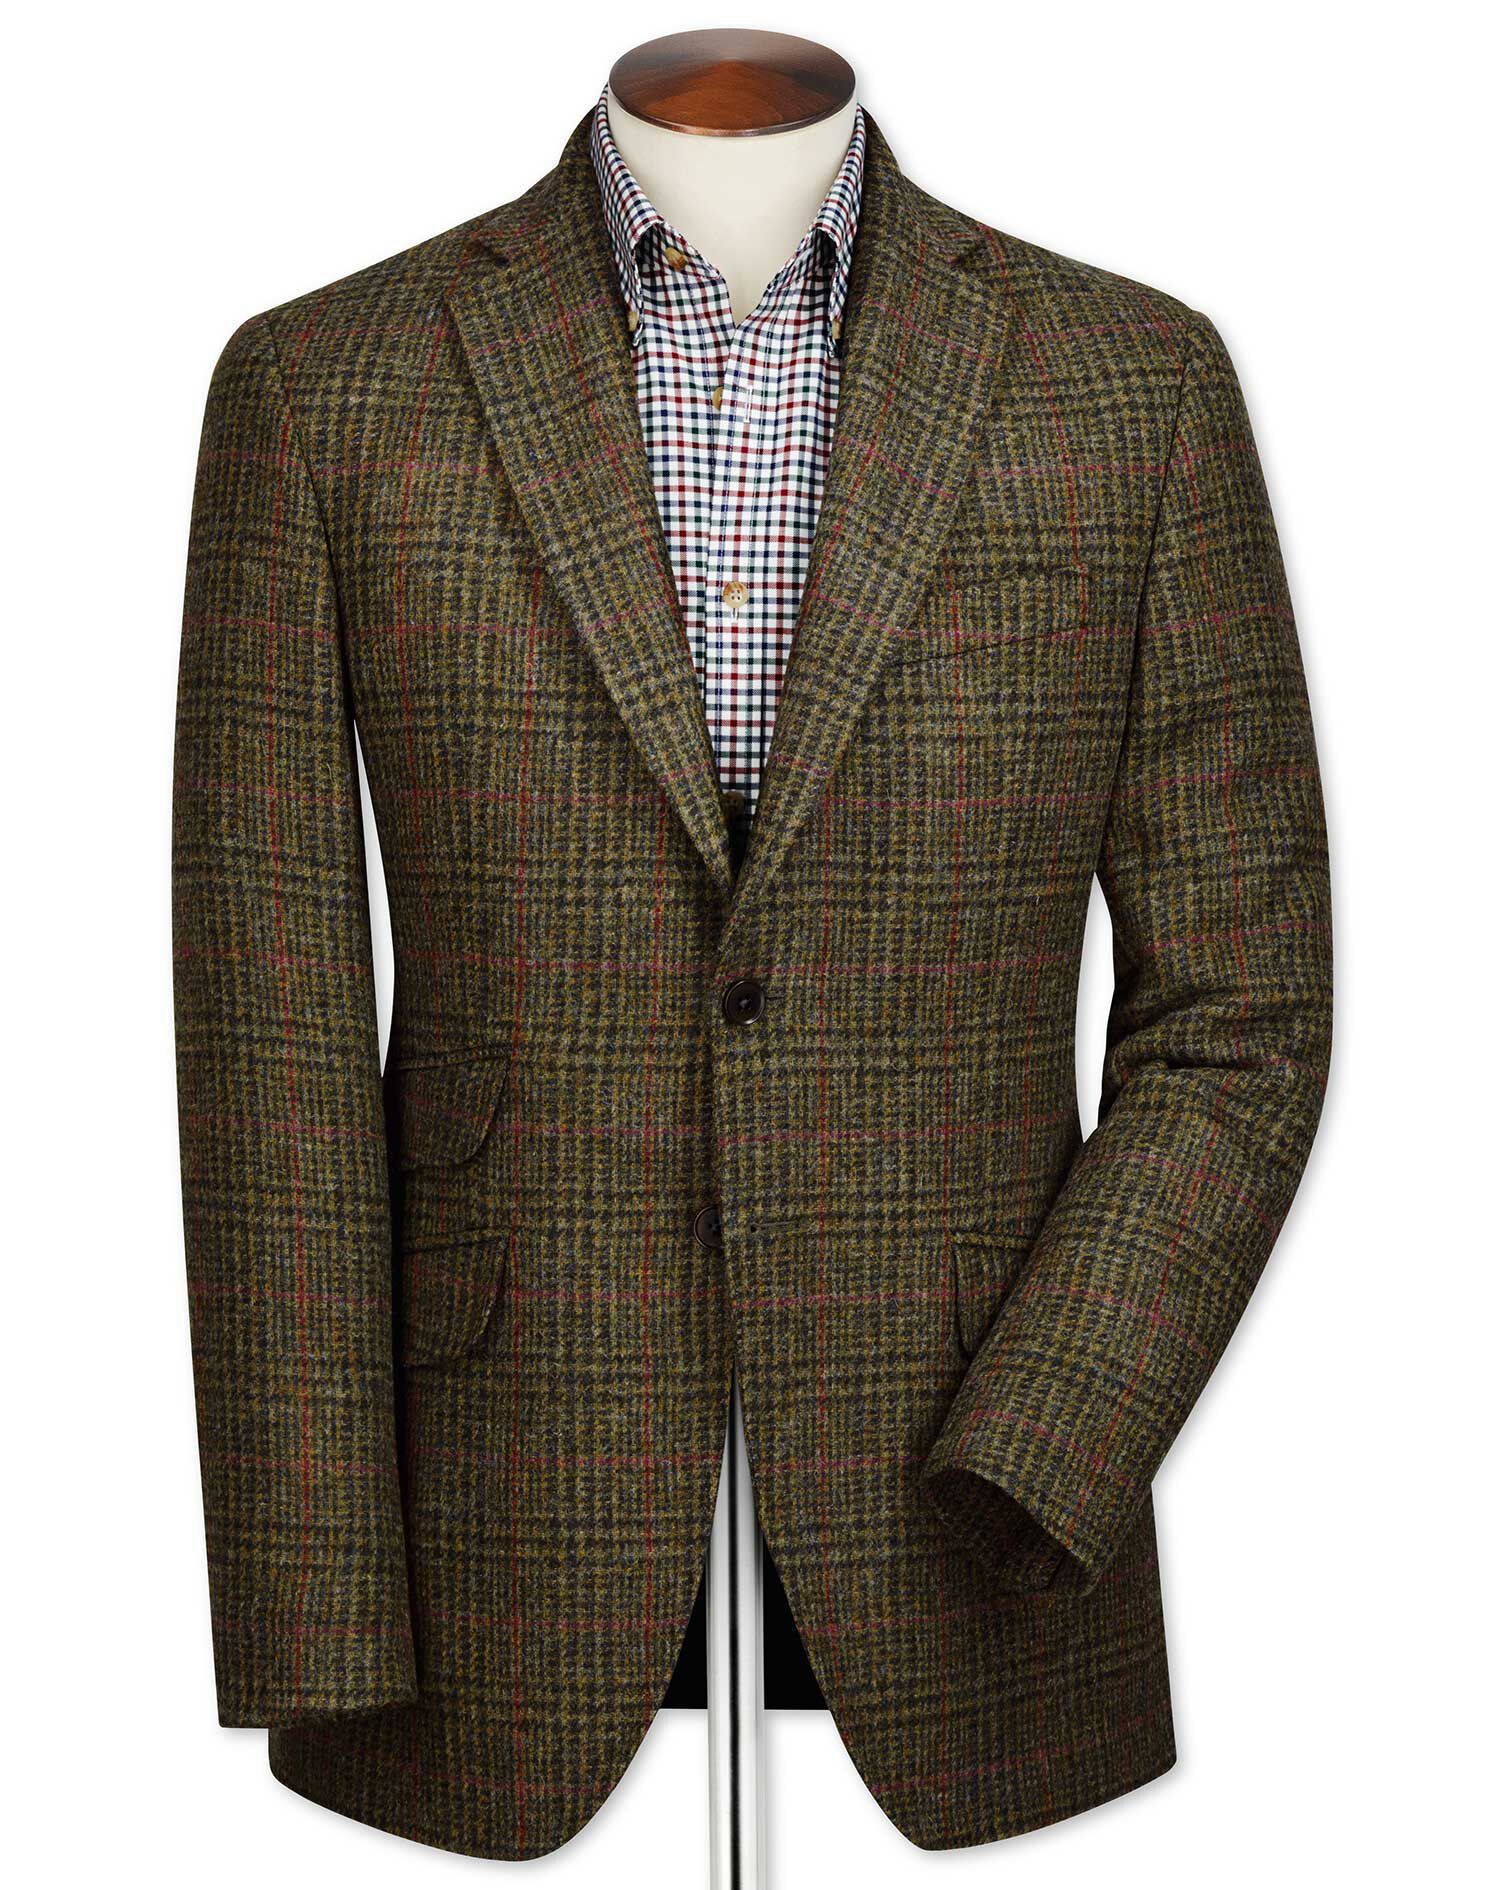 Slim Fit Green Checkered British Tweed Wool Jacket Size 40 Regular by Charles Tyrwhitt